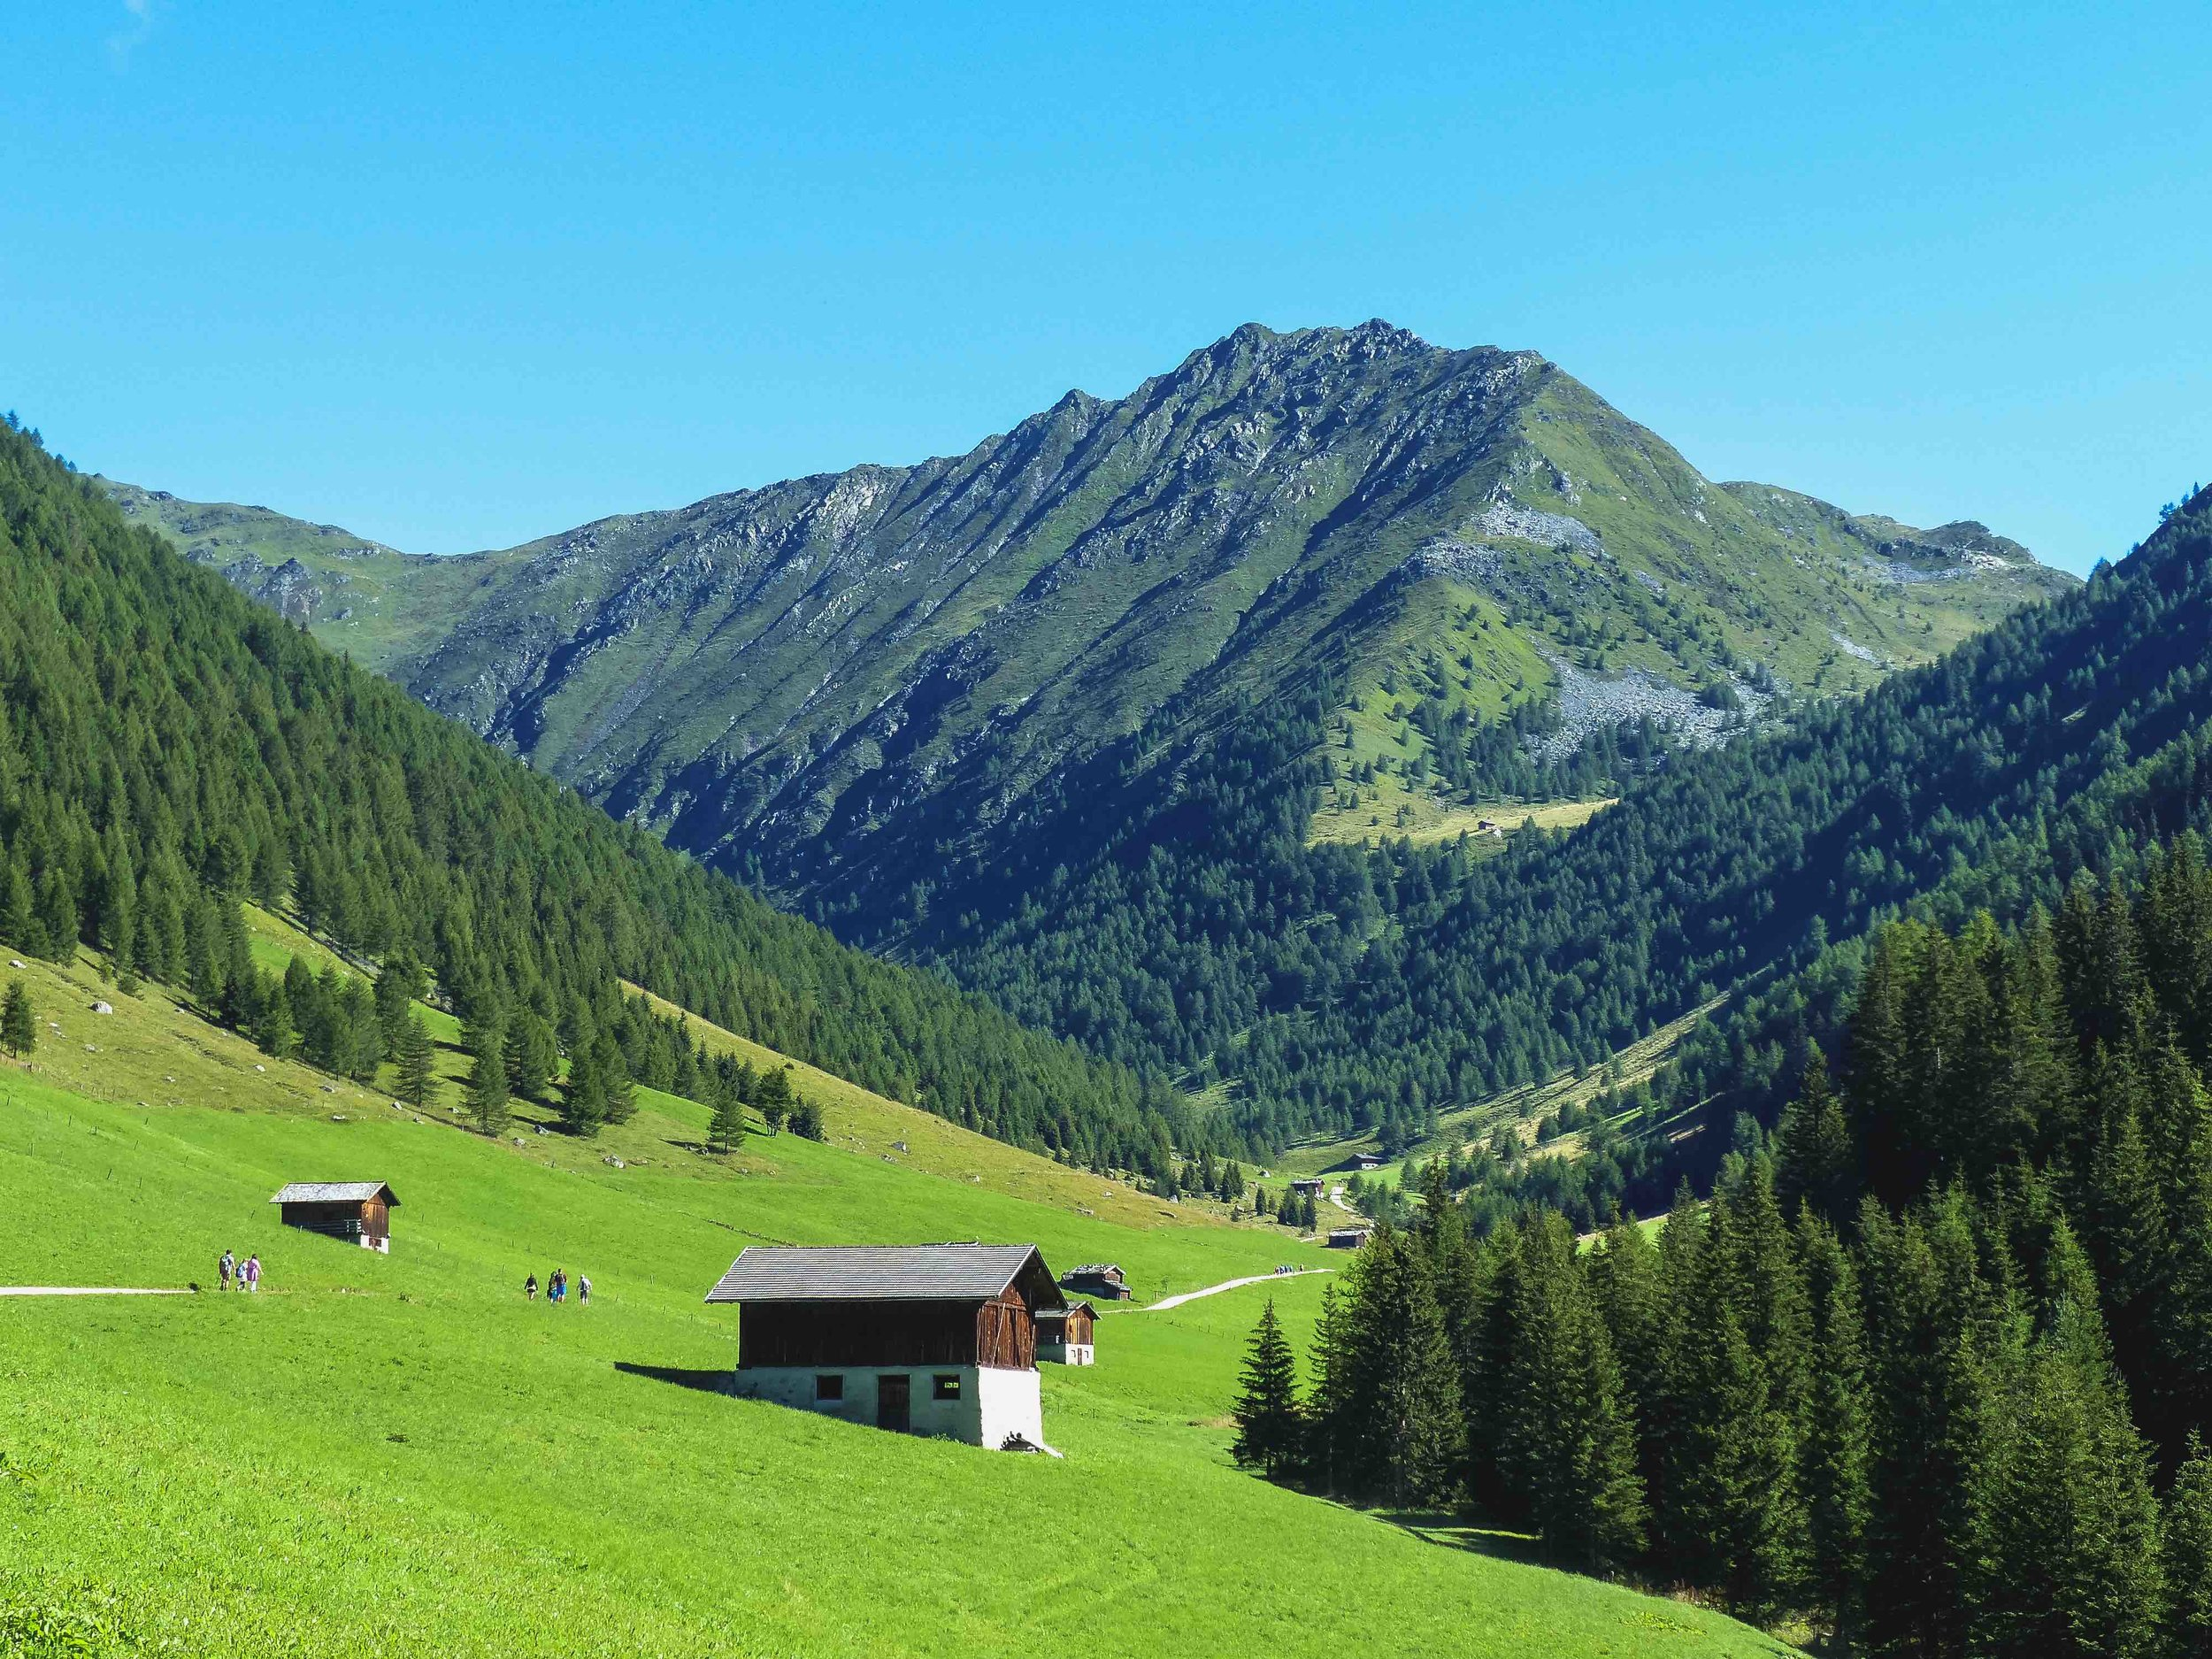 First day: we went on an easier trail leading us from the alpine pastures to the mountain tops